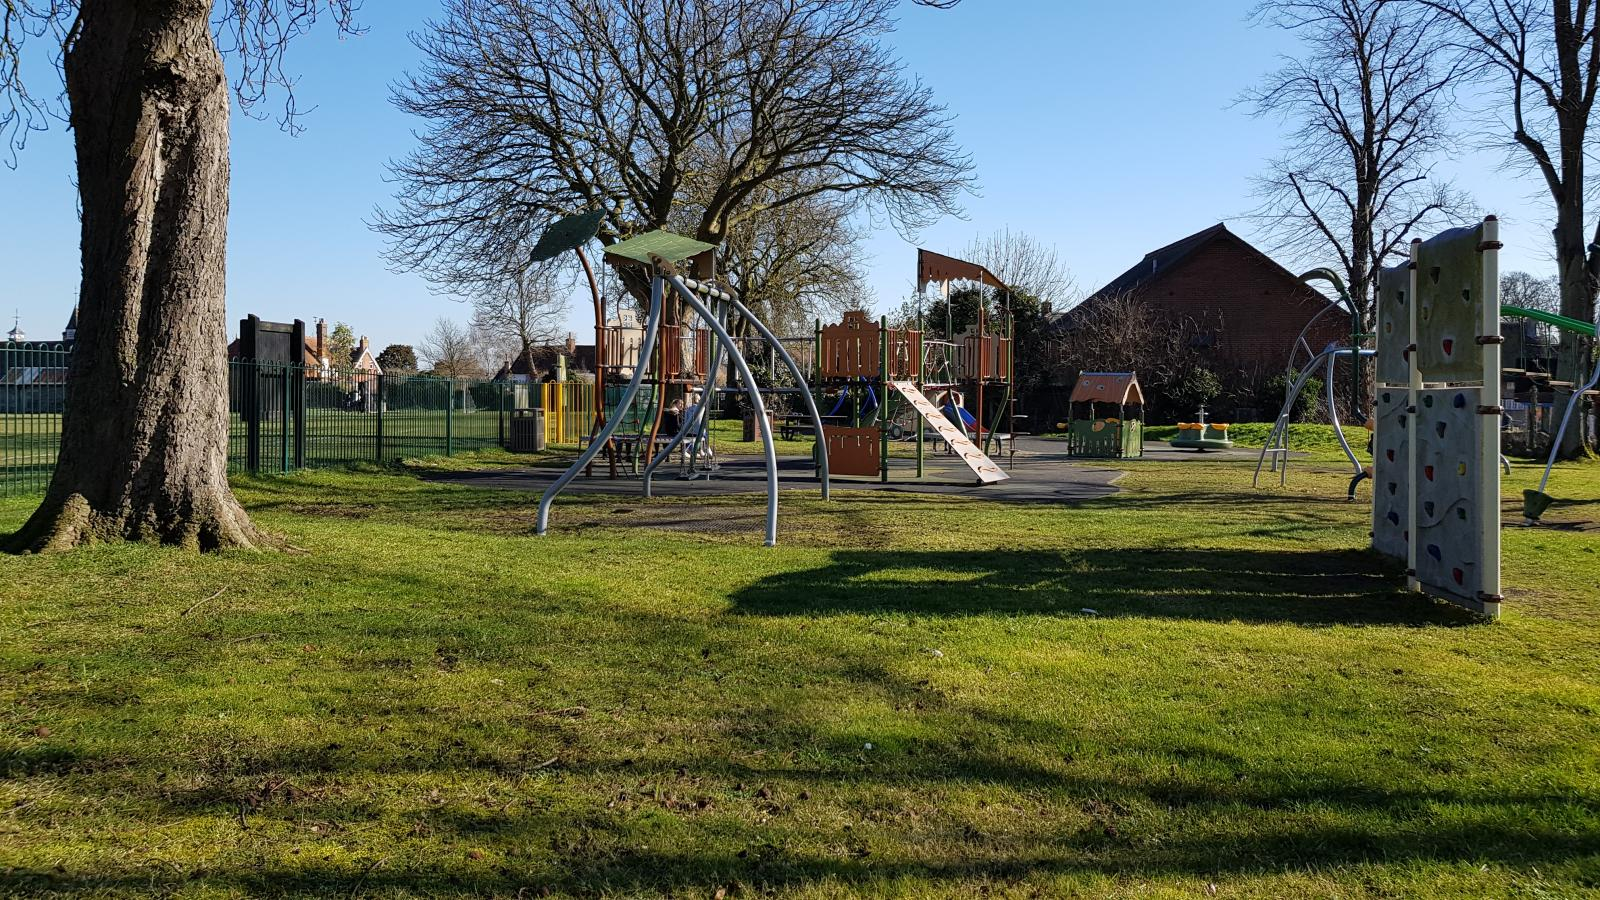 Jubilee Park and Recreation Ground